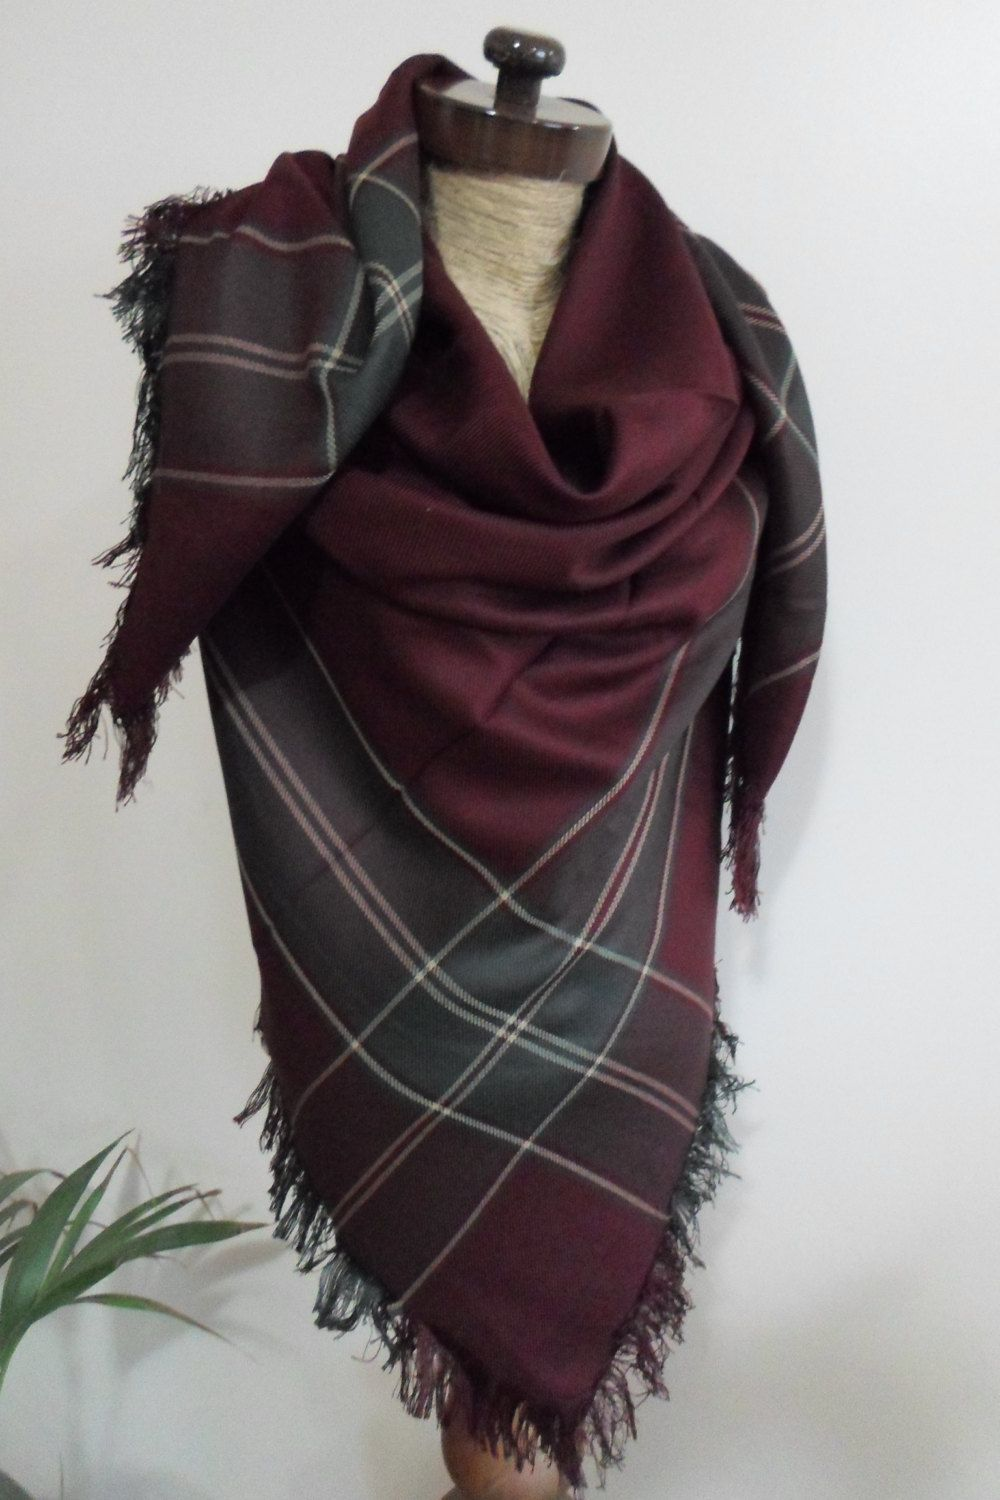 7a11e7cae Burgundy Plaid Blanket scarf, Plaid scarf, Winter fashion, blanket scarves,  oversized, For Men, For Her, blanket, - pinned by pin4etsy.com